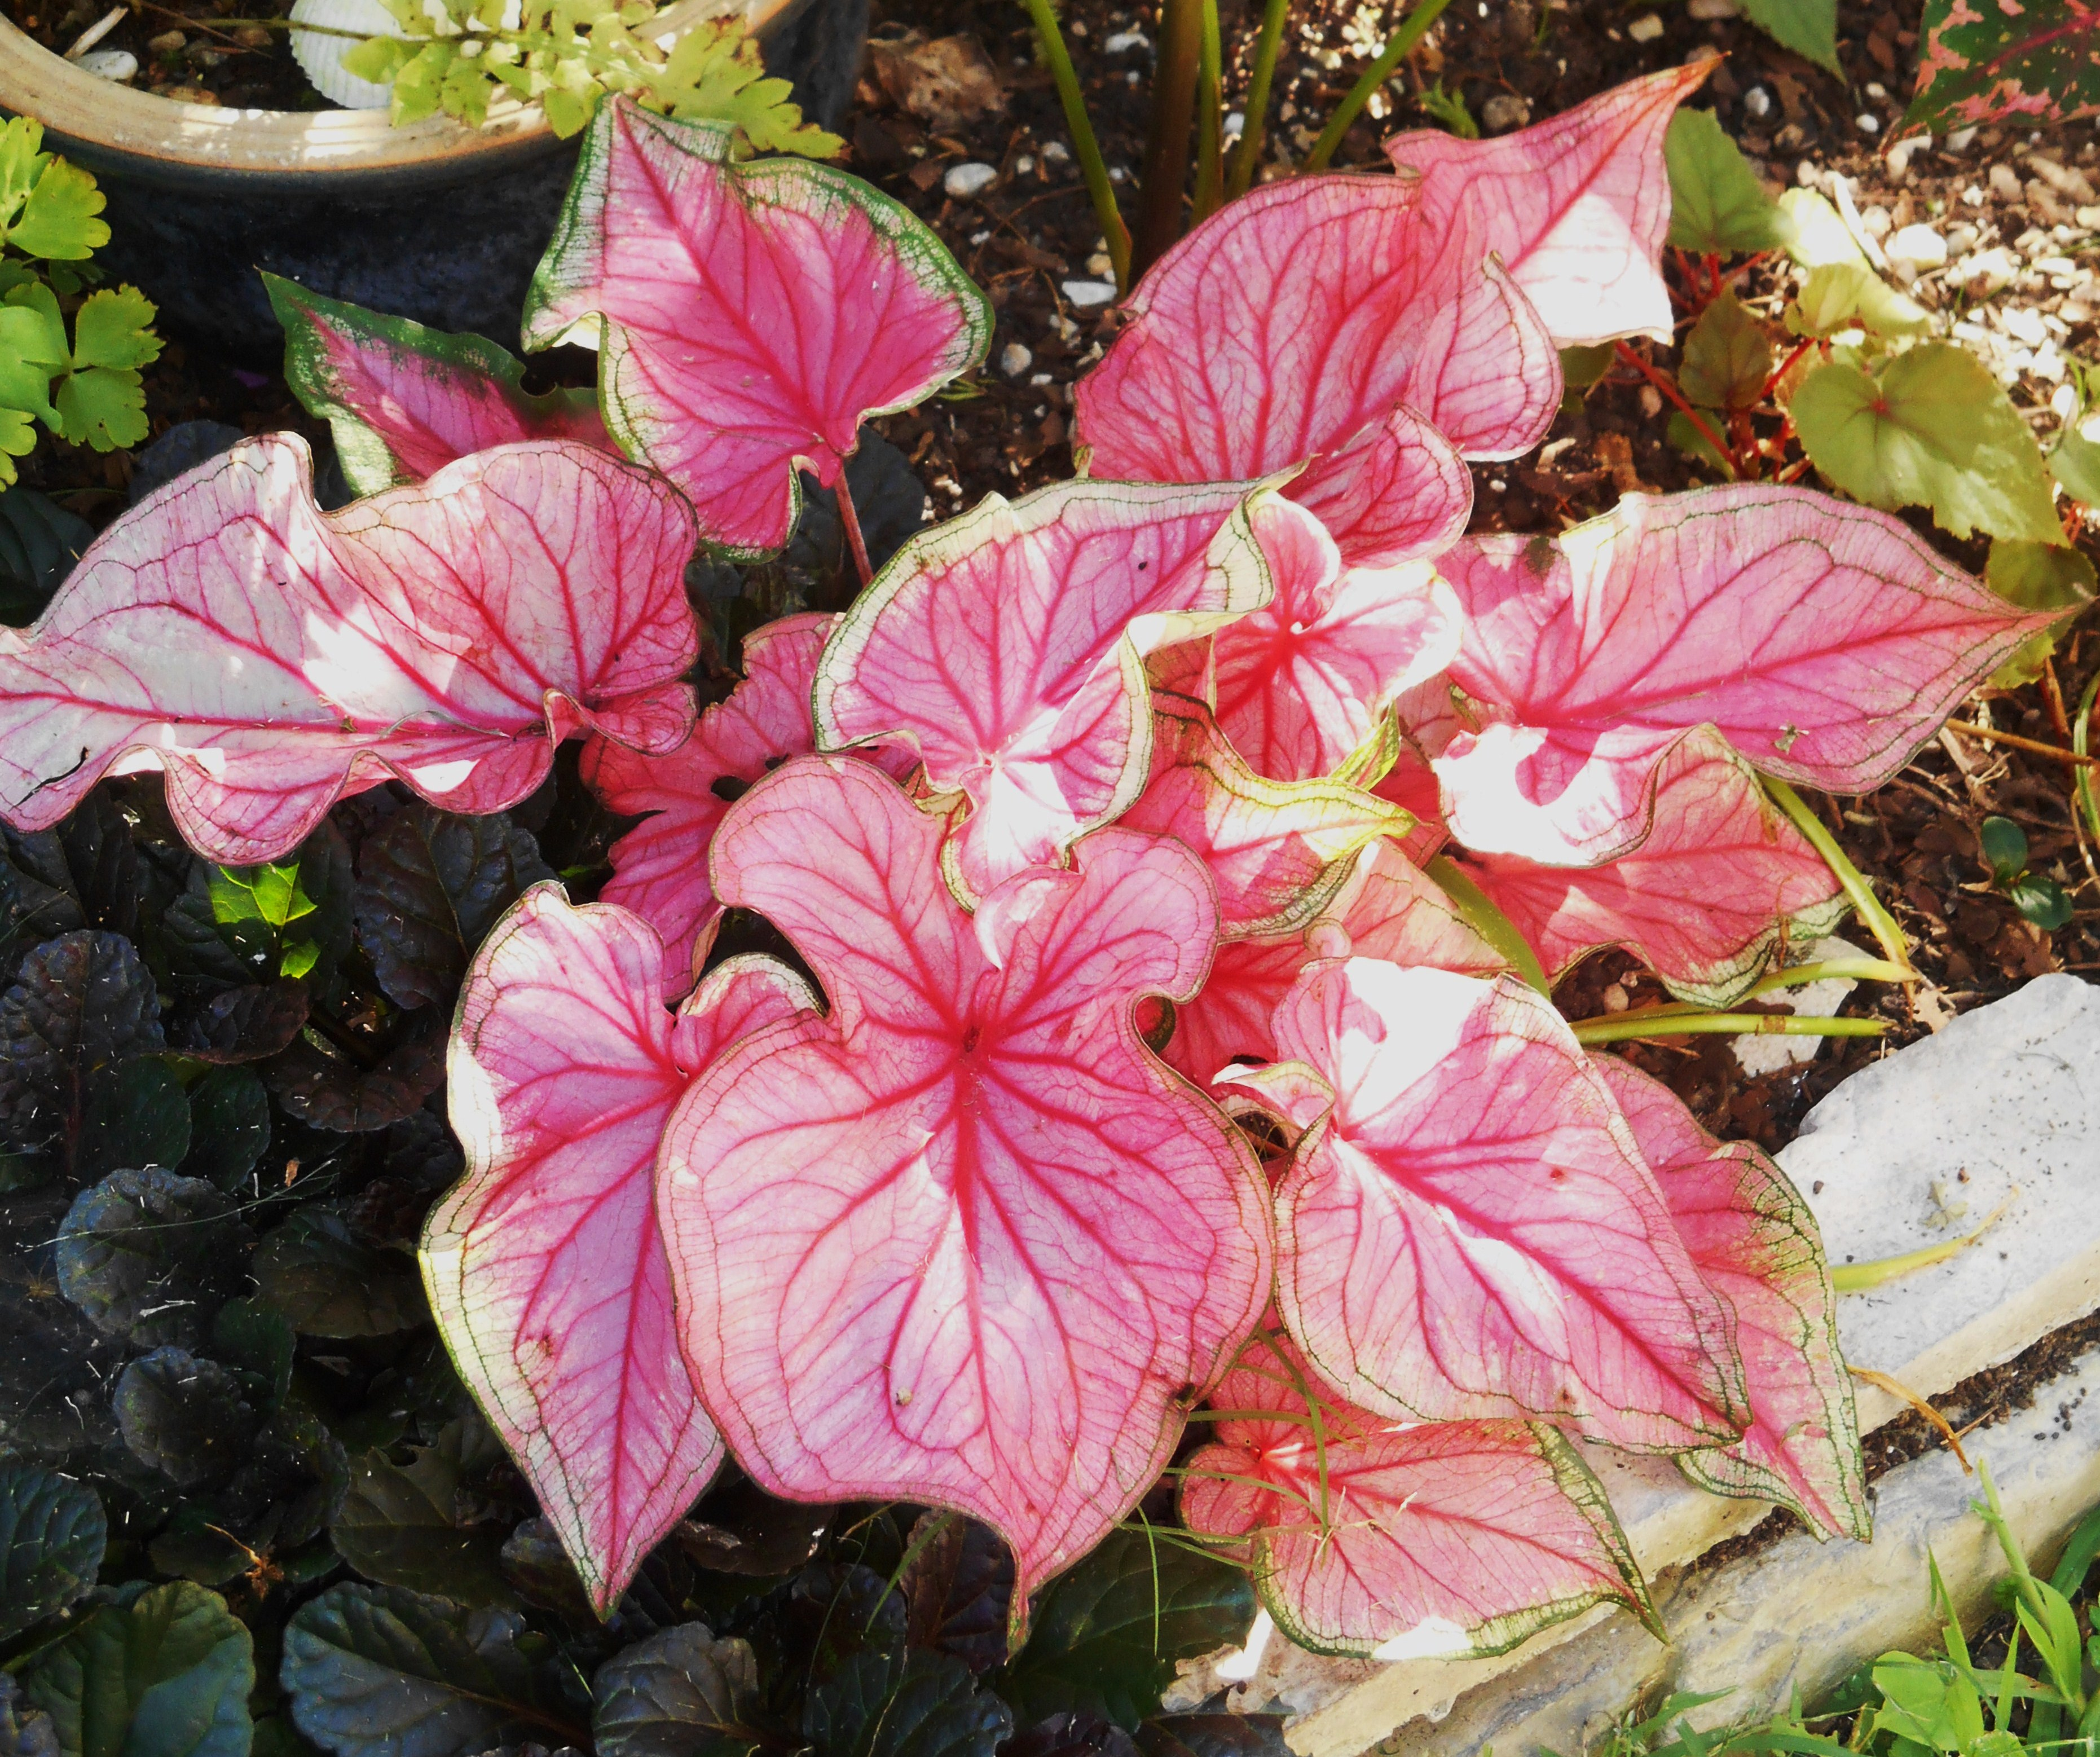 These 'Florida' series Caladiums, developed at the University of Florida, can take more sun than many other varieties will tolerate.